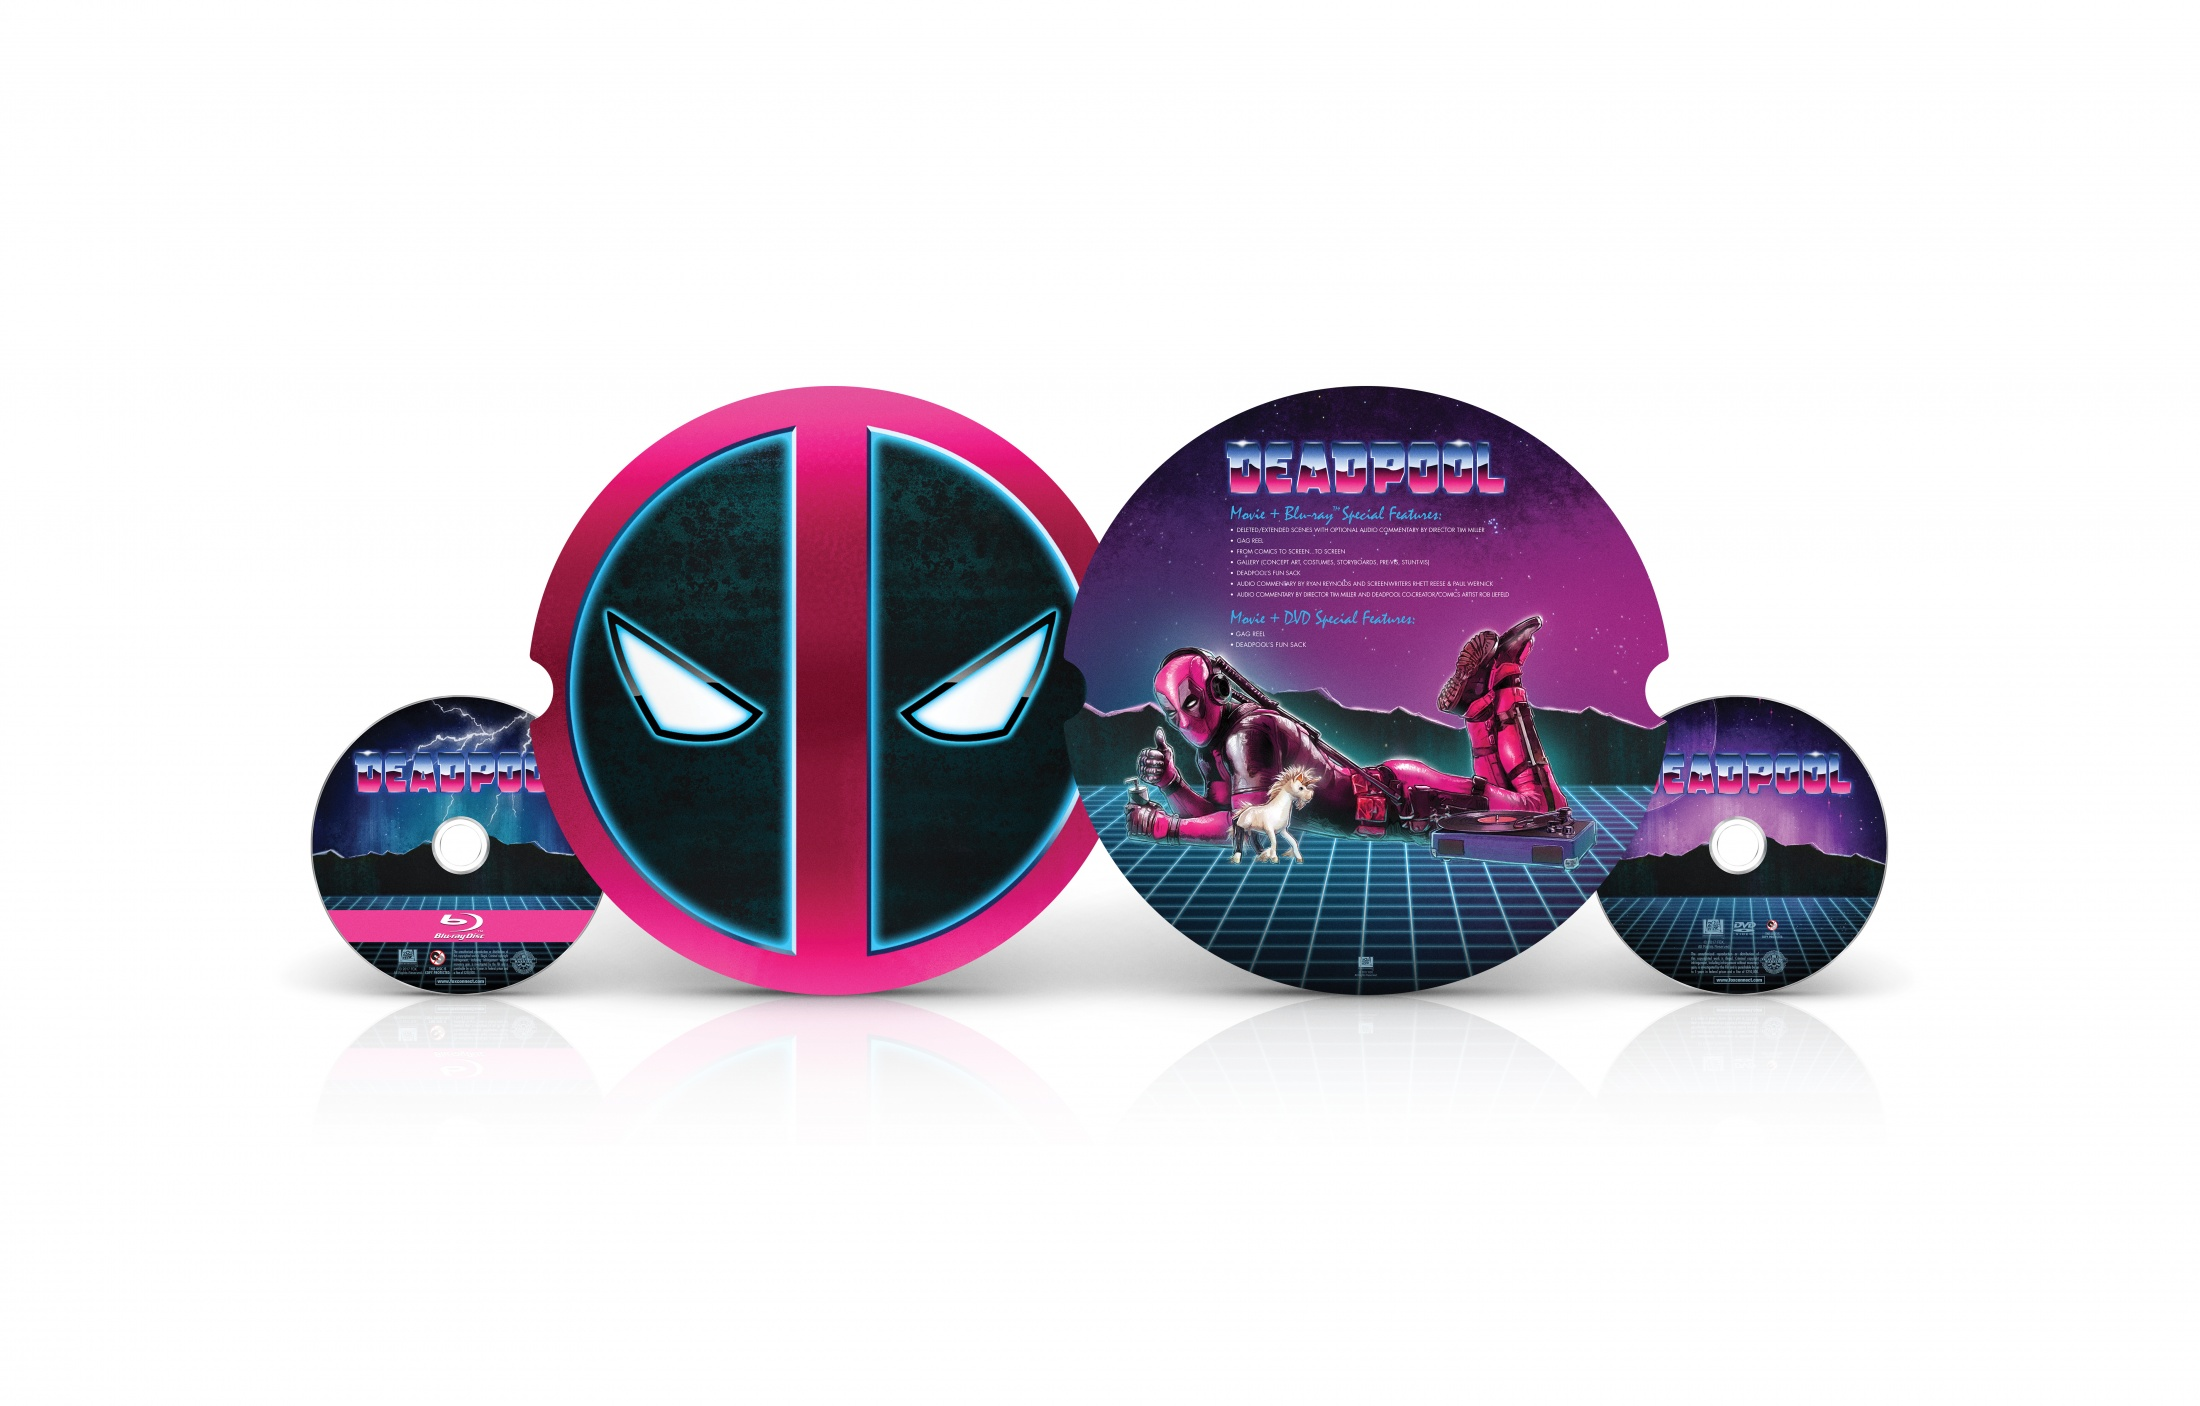 Image Media for Comic-Con Vinyl Packaging